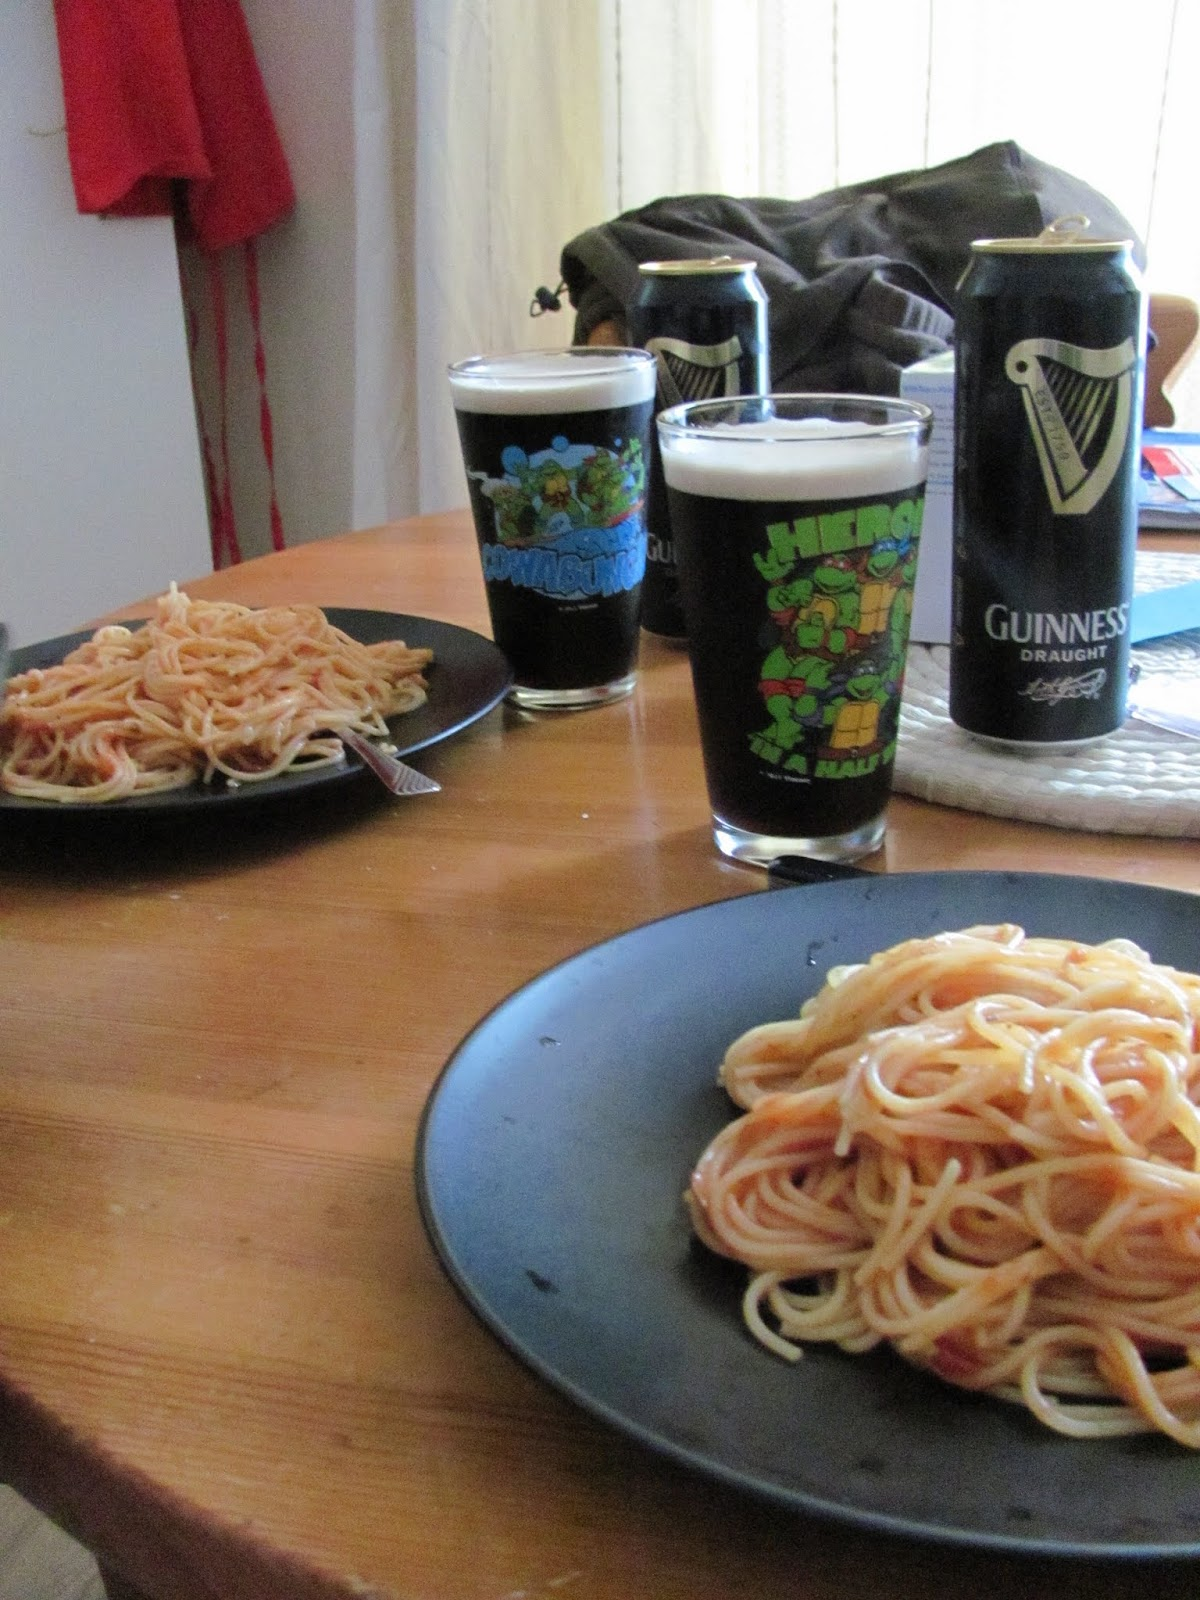 Our first supper in our new home.  Spaghetti on the plates and Guinness stout in Teenage Mutant Ninja Turtles glasses